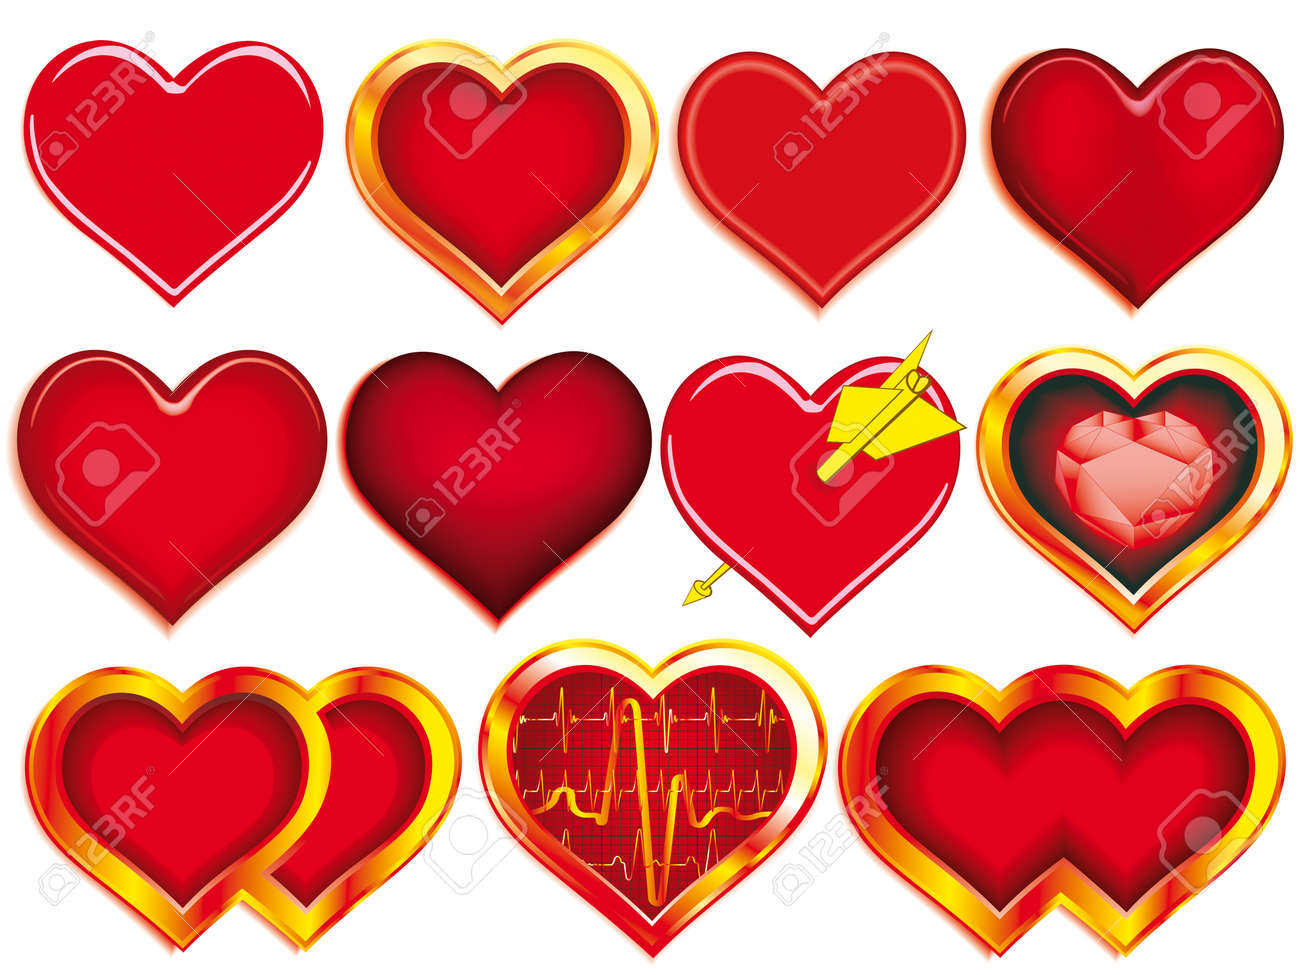 Collection of Hearts for various designs Stock Vector - 12940034